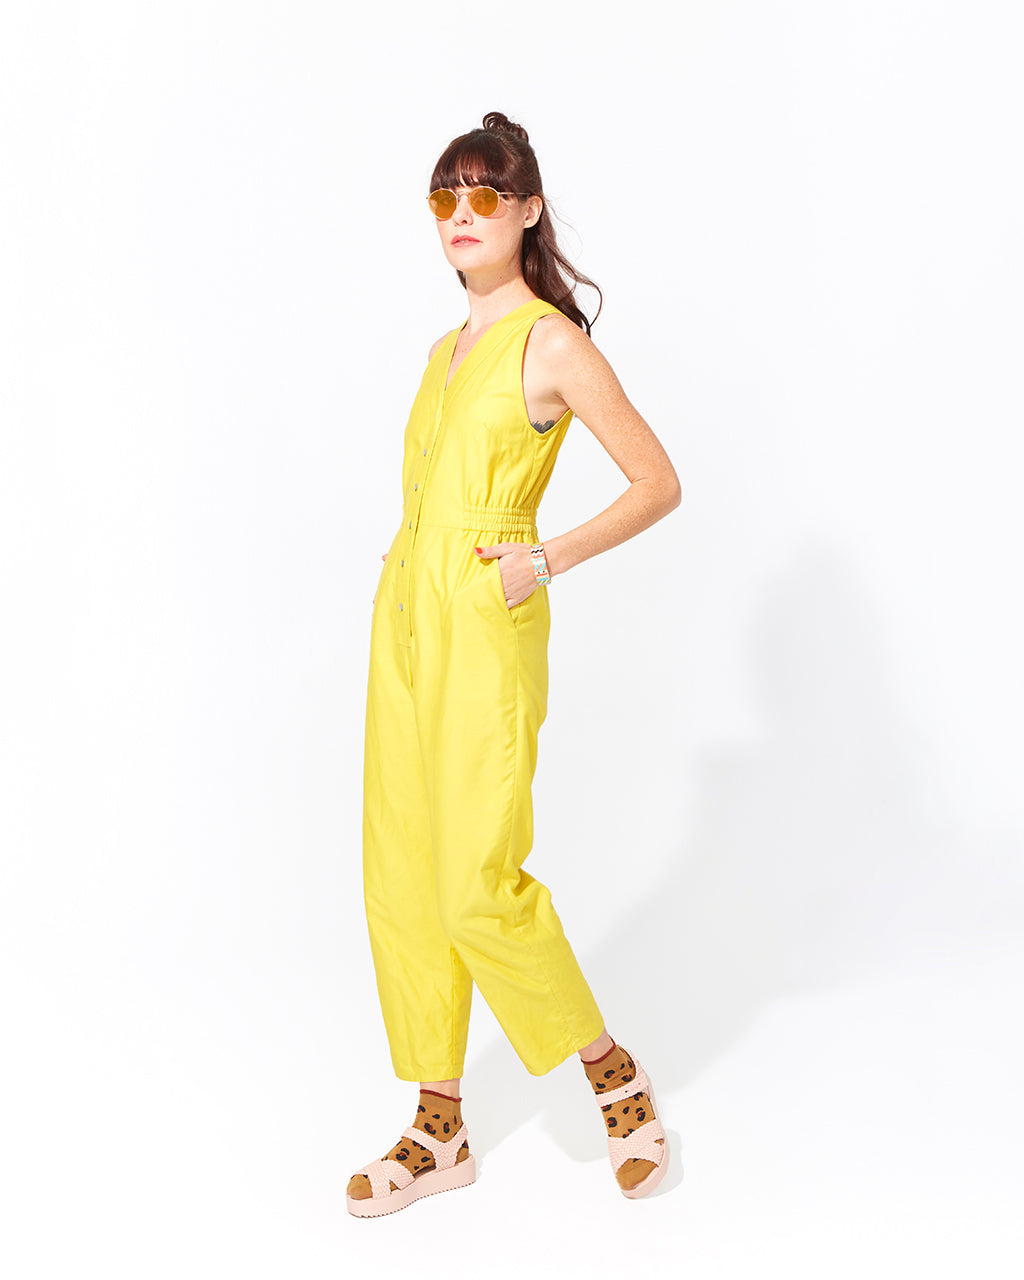 v jumpsuit - solid yellow